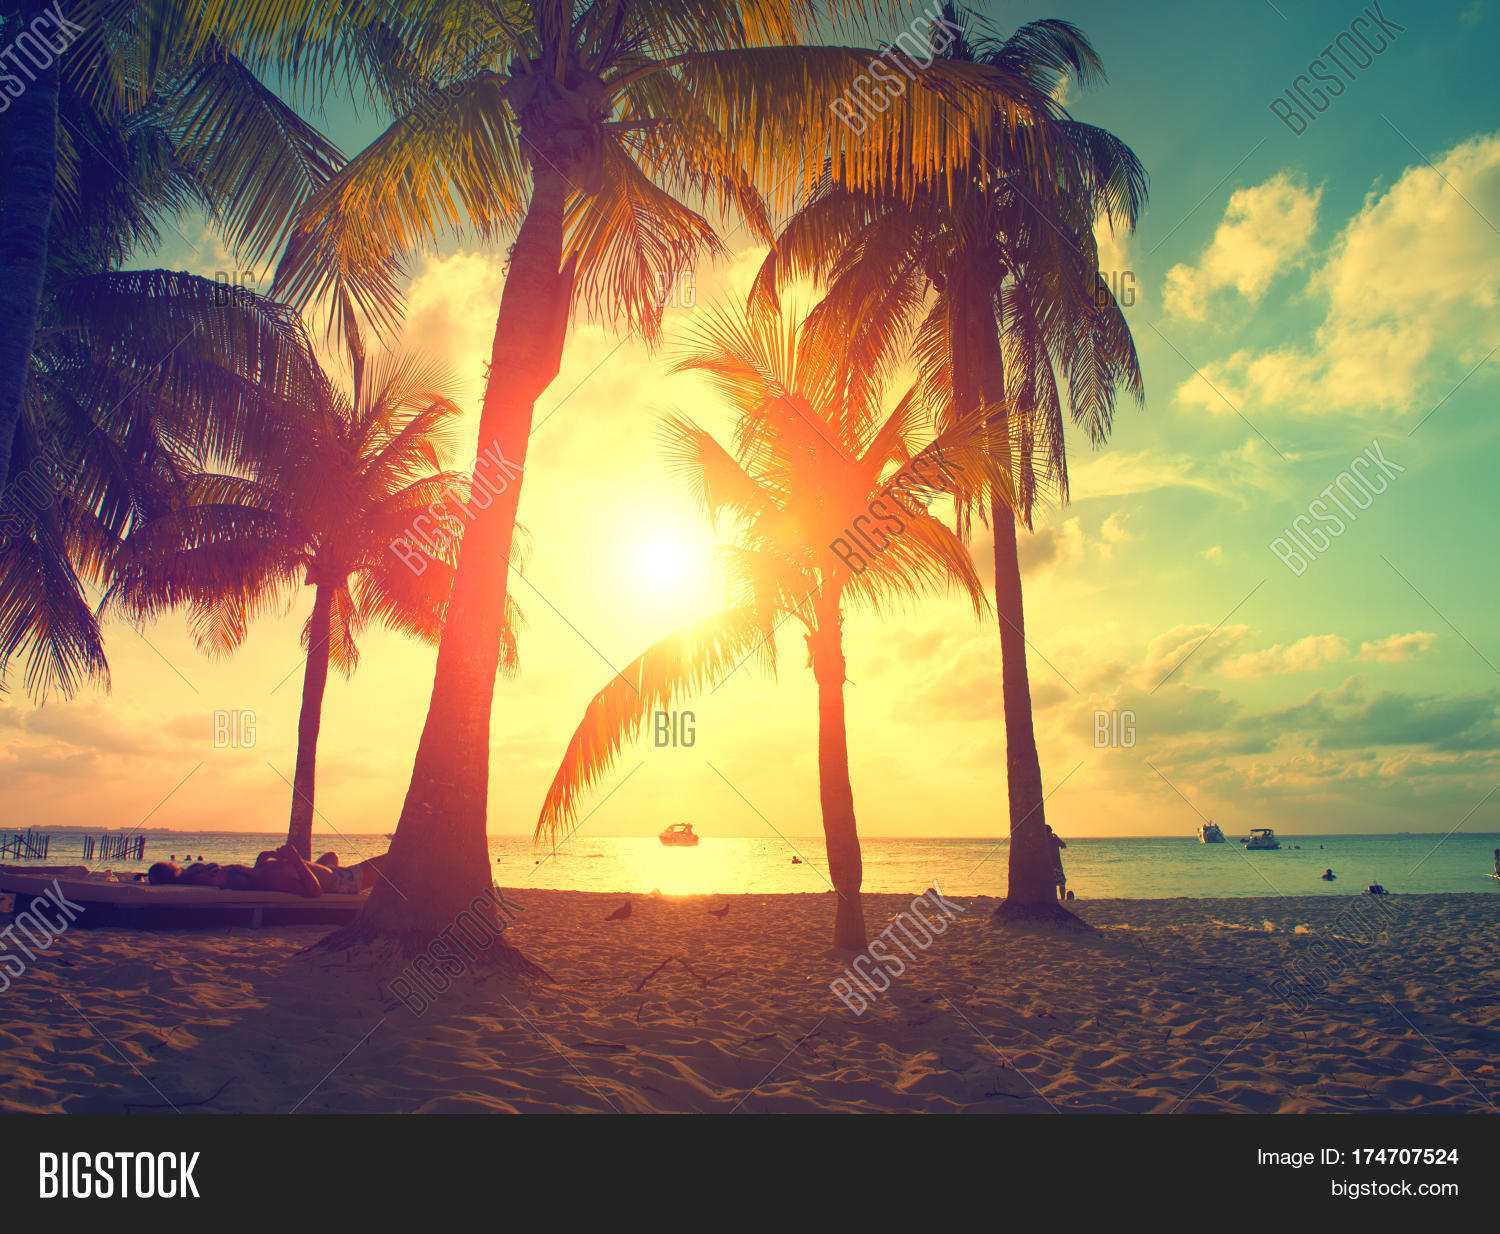 Sunset Beach With Palm Trees And Beautiful Sky Tourism Travel Vacation Concept Background